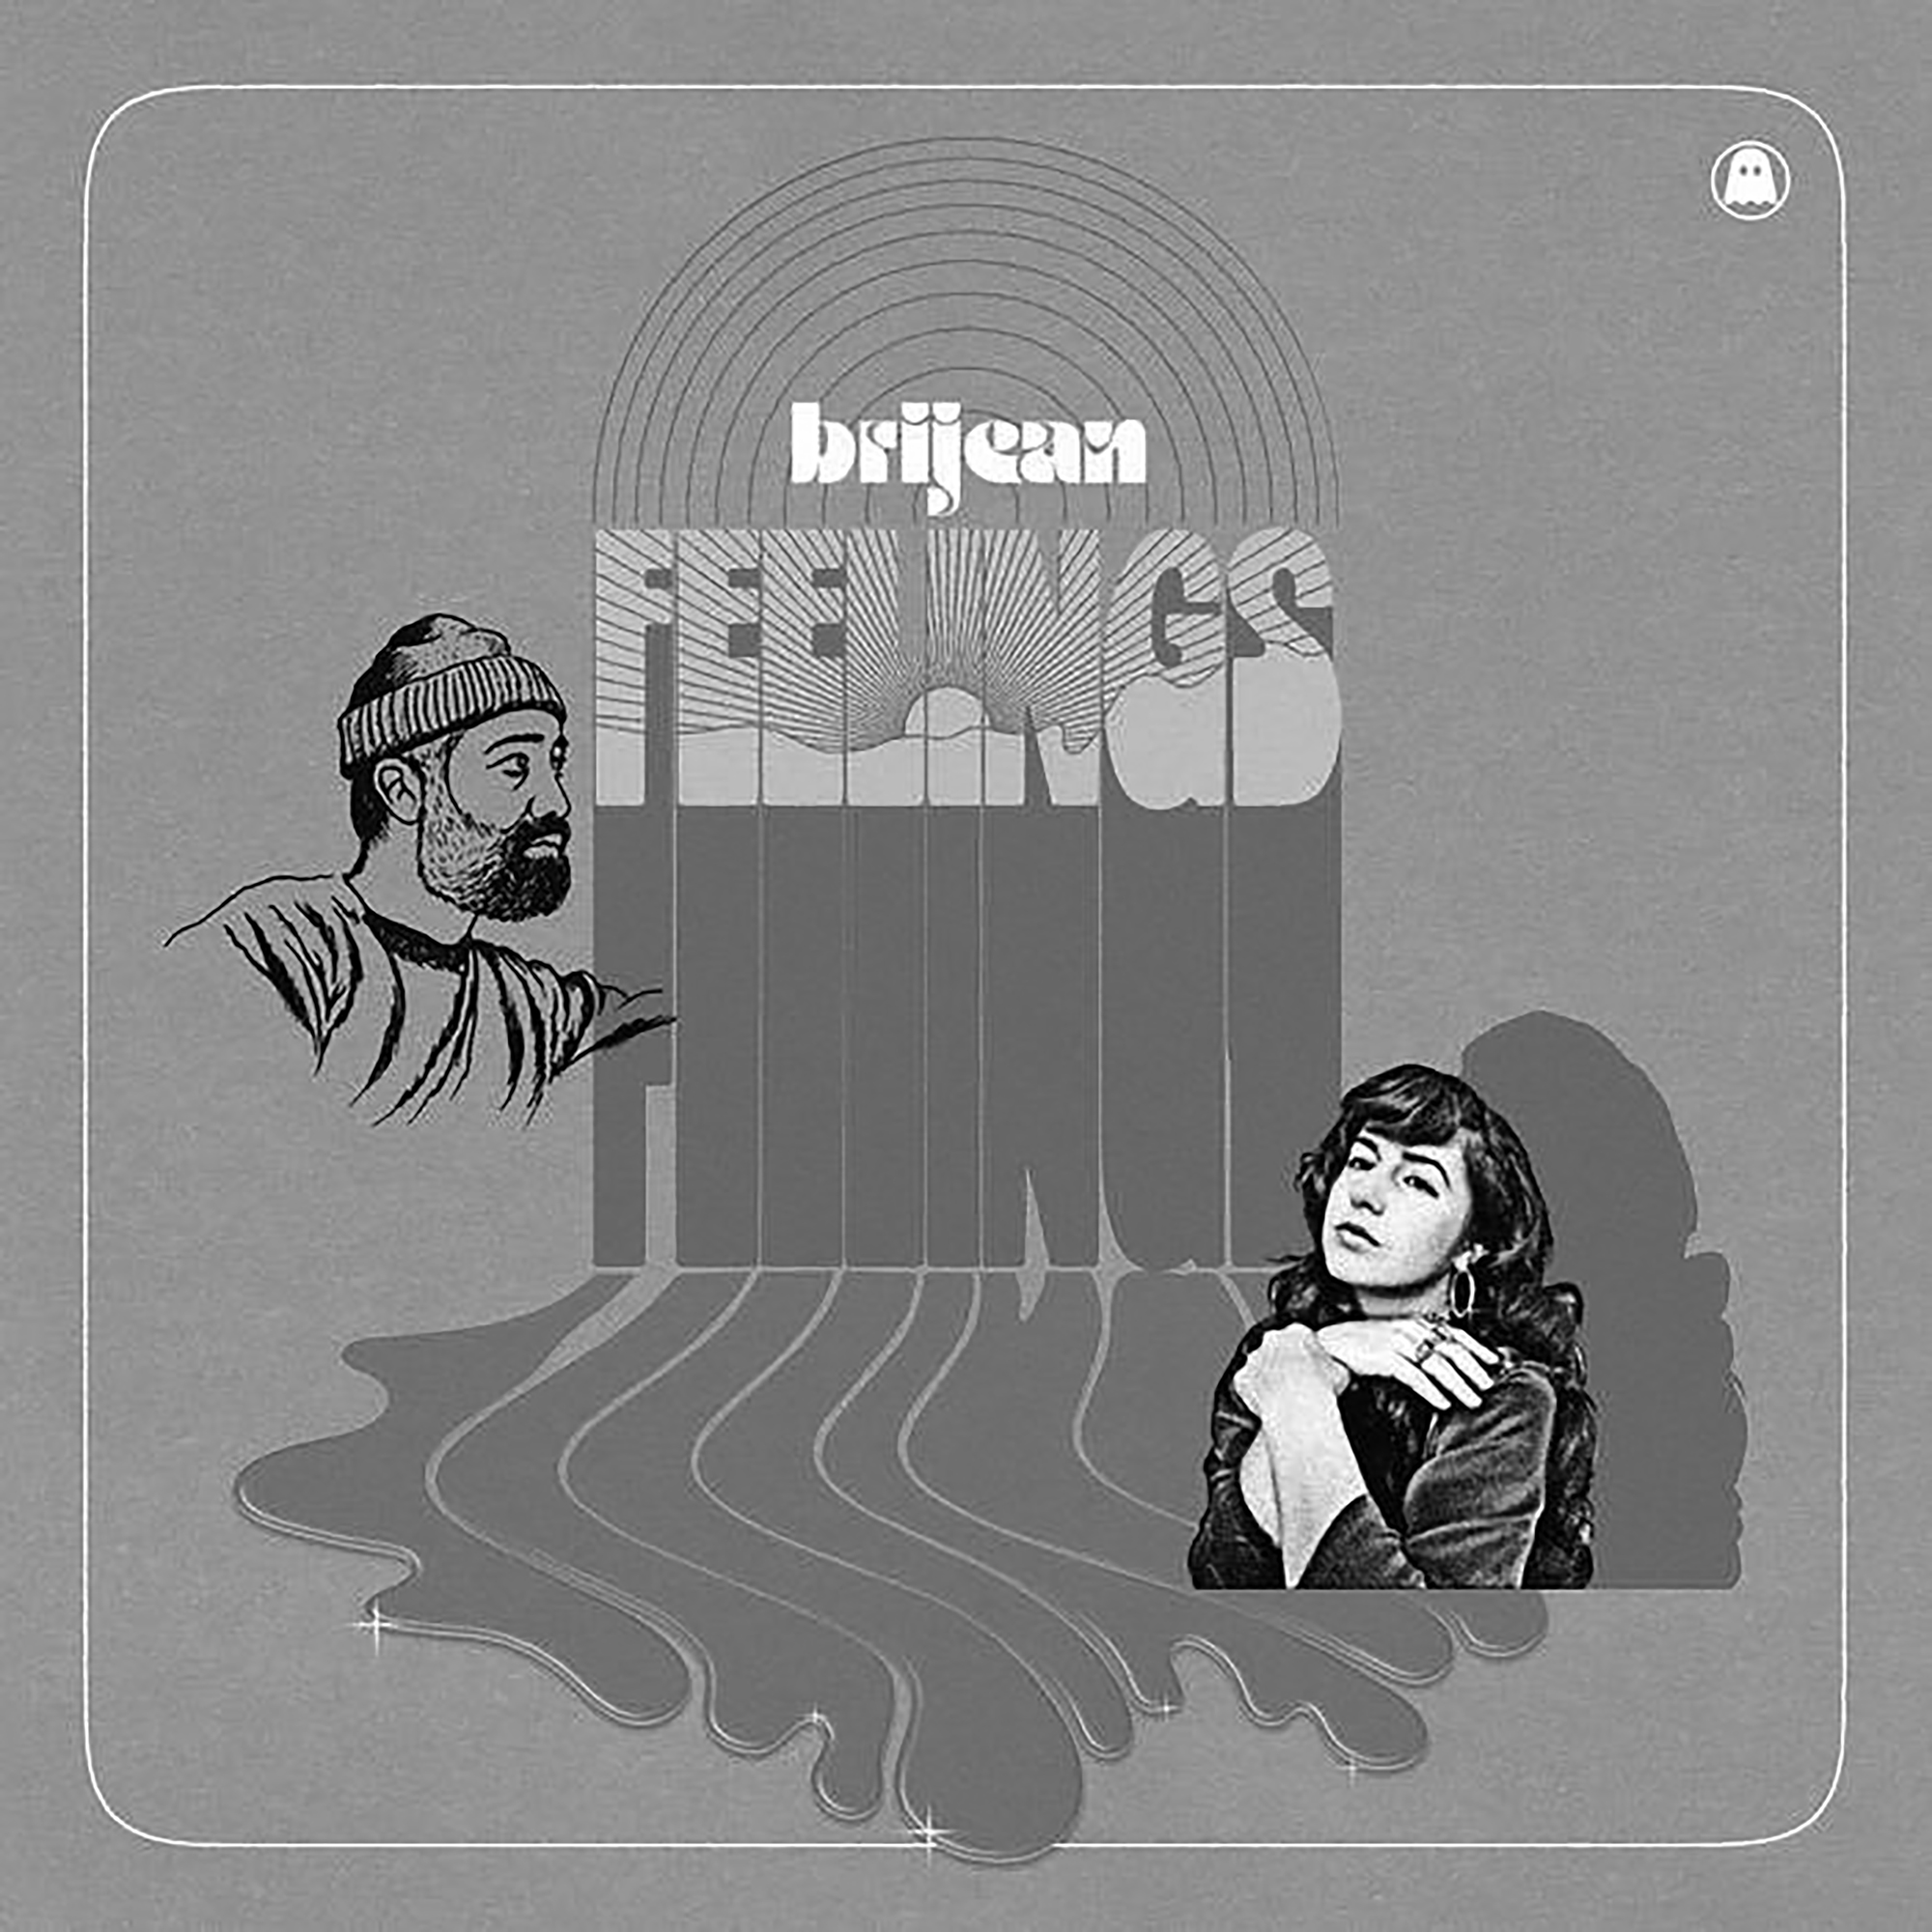 """Album cover for Feelings by Brijean. The background is gray and the center reads """"brijean"""" in white and below it """"FEELINGS"""" with a sunset within the letters. On the left is a person with a beard wearing a beanie and looking right. On the right is person with long, dark hair holding their wrist and looking forward. There is a liquid oozing from the letters toward the bottom of the frame."""